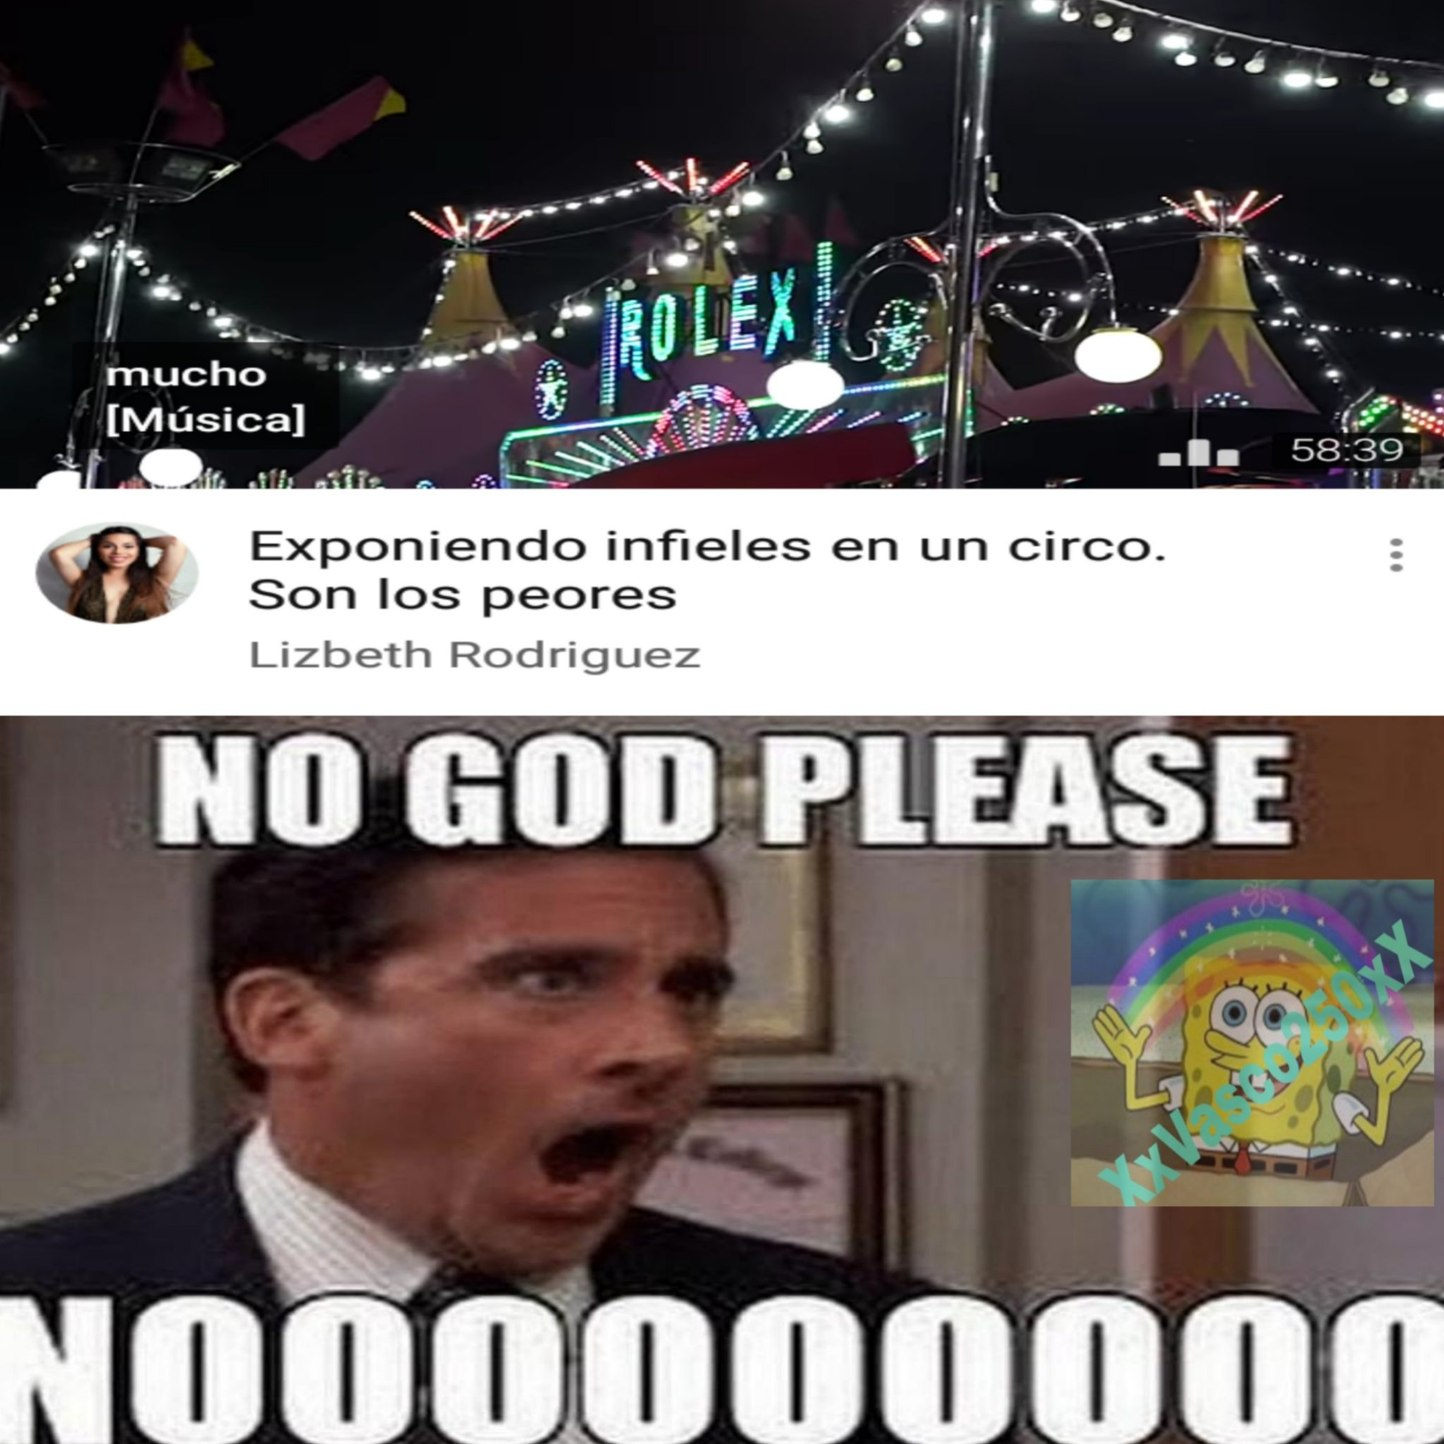 No please noooo - meme